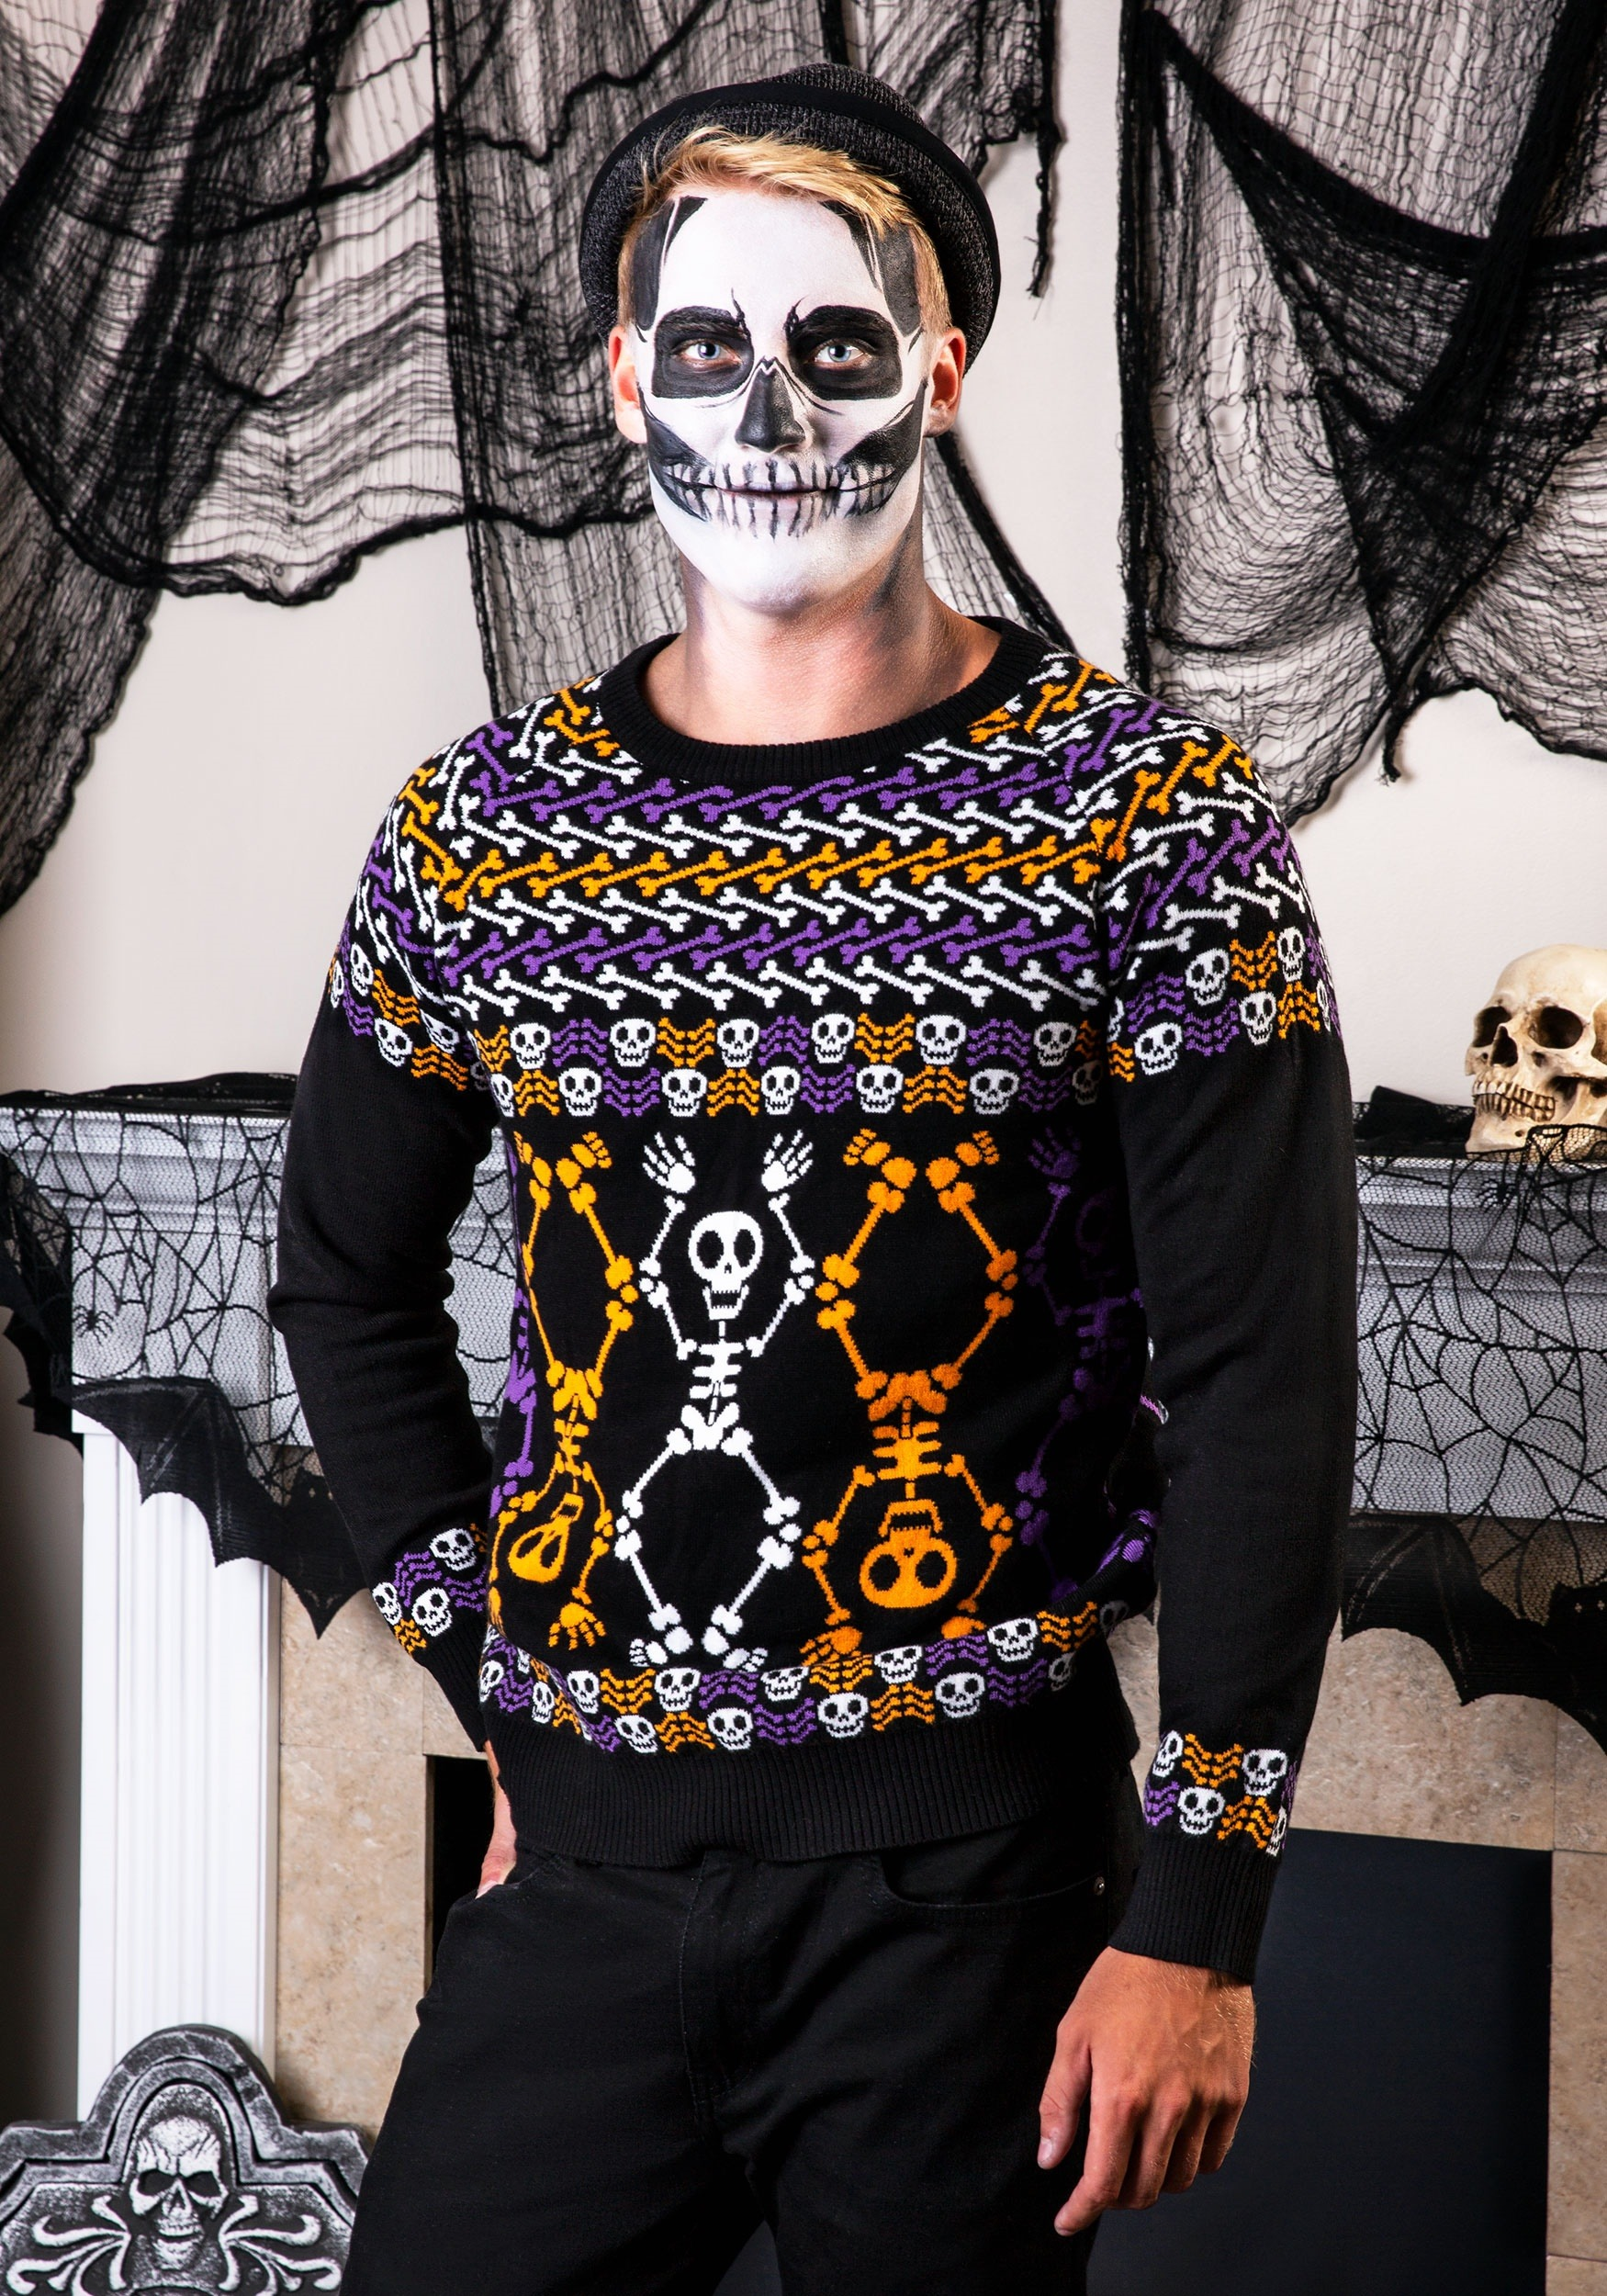 fdeda24a420 Day of the Dead Dancing Skeletons Halloween Sweater for Adults